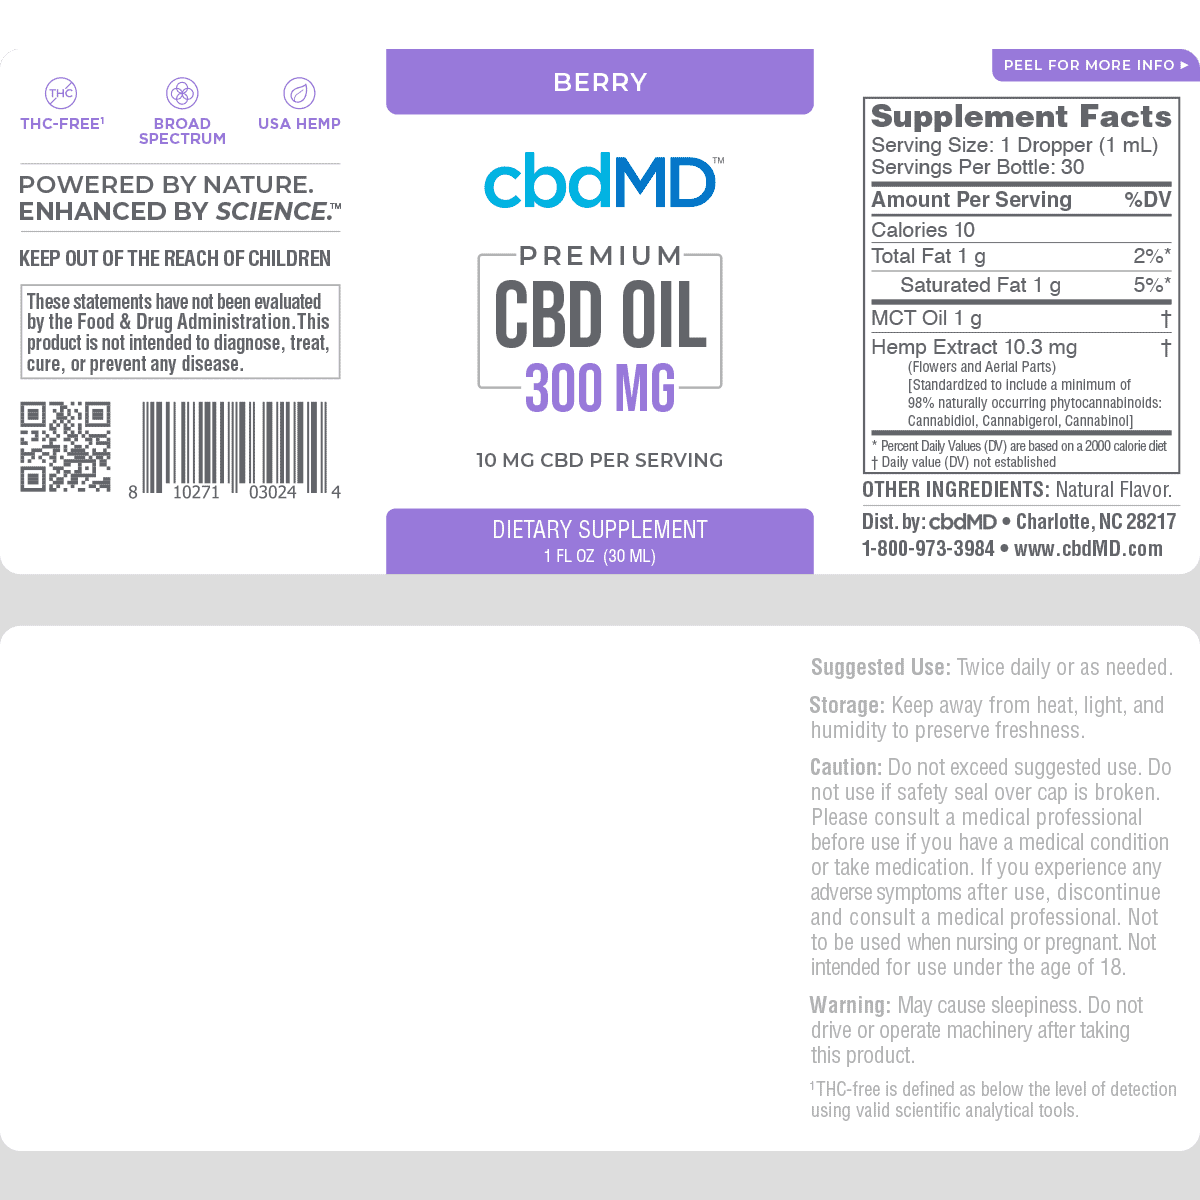 cbdMD, CBD Oil Tincture, Broad Spectrum THC-Free, Berry, 1oz, 300mg of CBD2